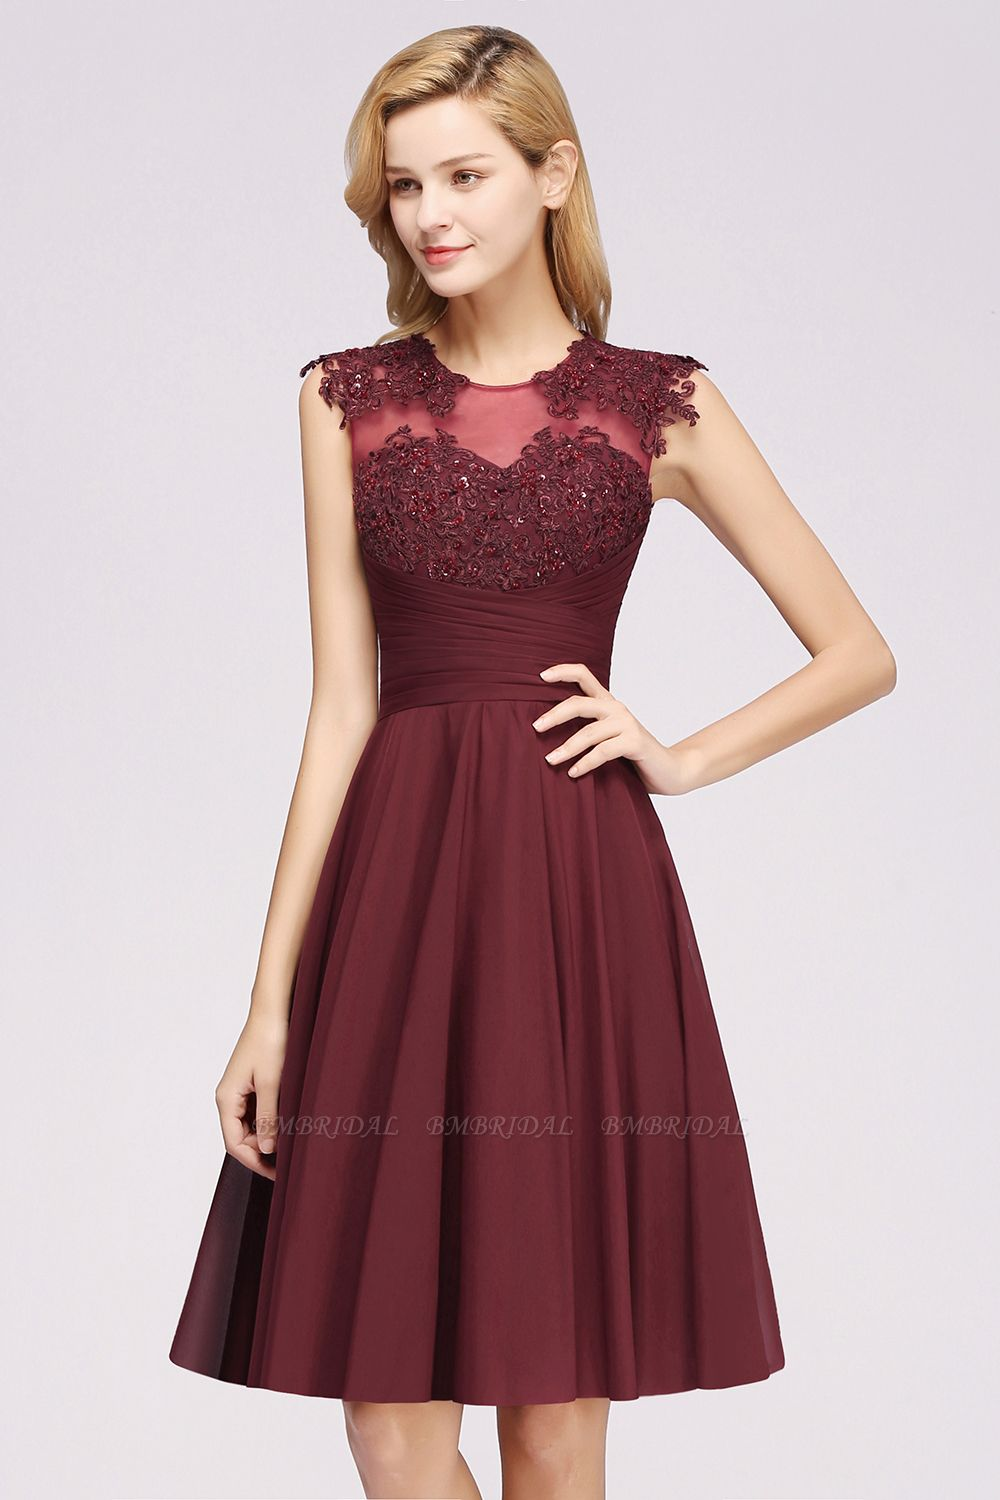 Cute Chiffon Round Neck Short Burgundy Bridesmaid Dresses with Appliques